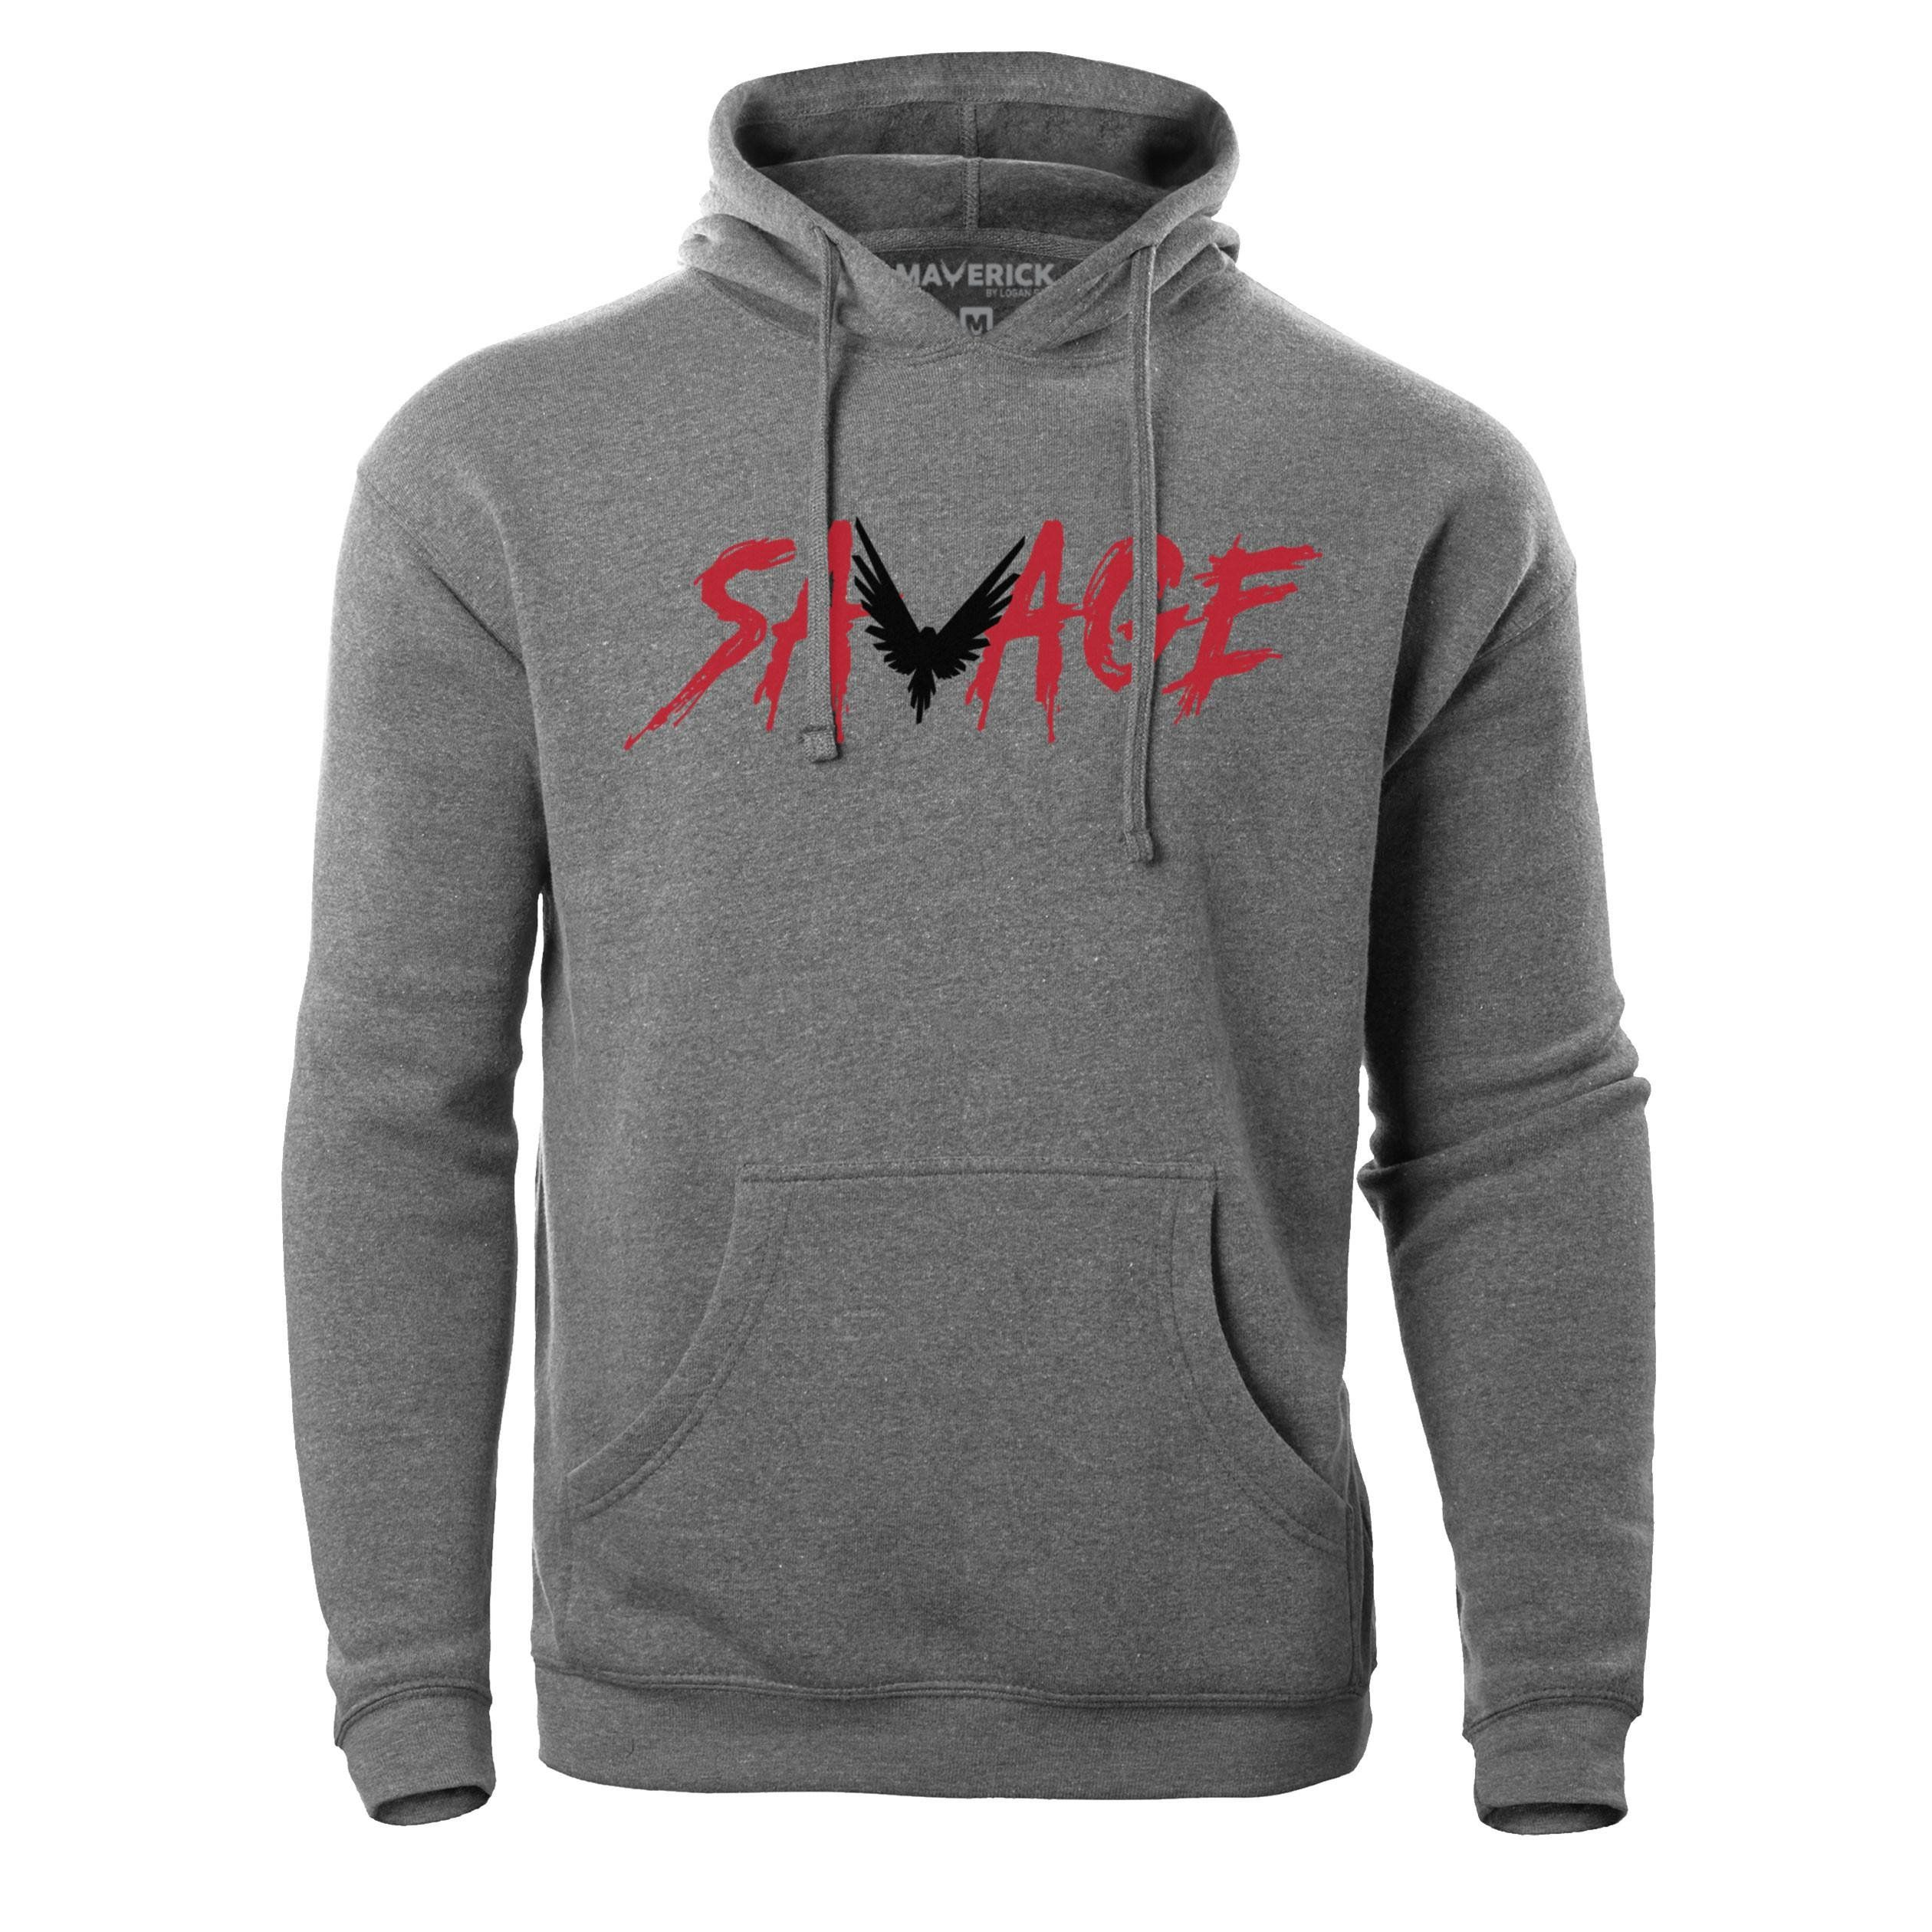 f3a56f8eb5 Savage Hoodie | Xmas | Hoodies, Logan paul merch, Logan paul